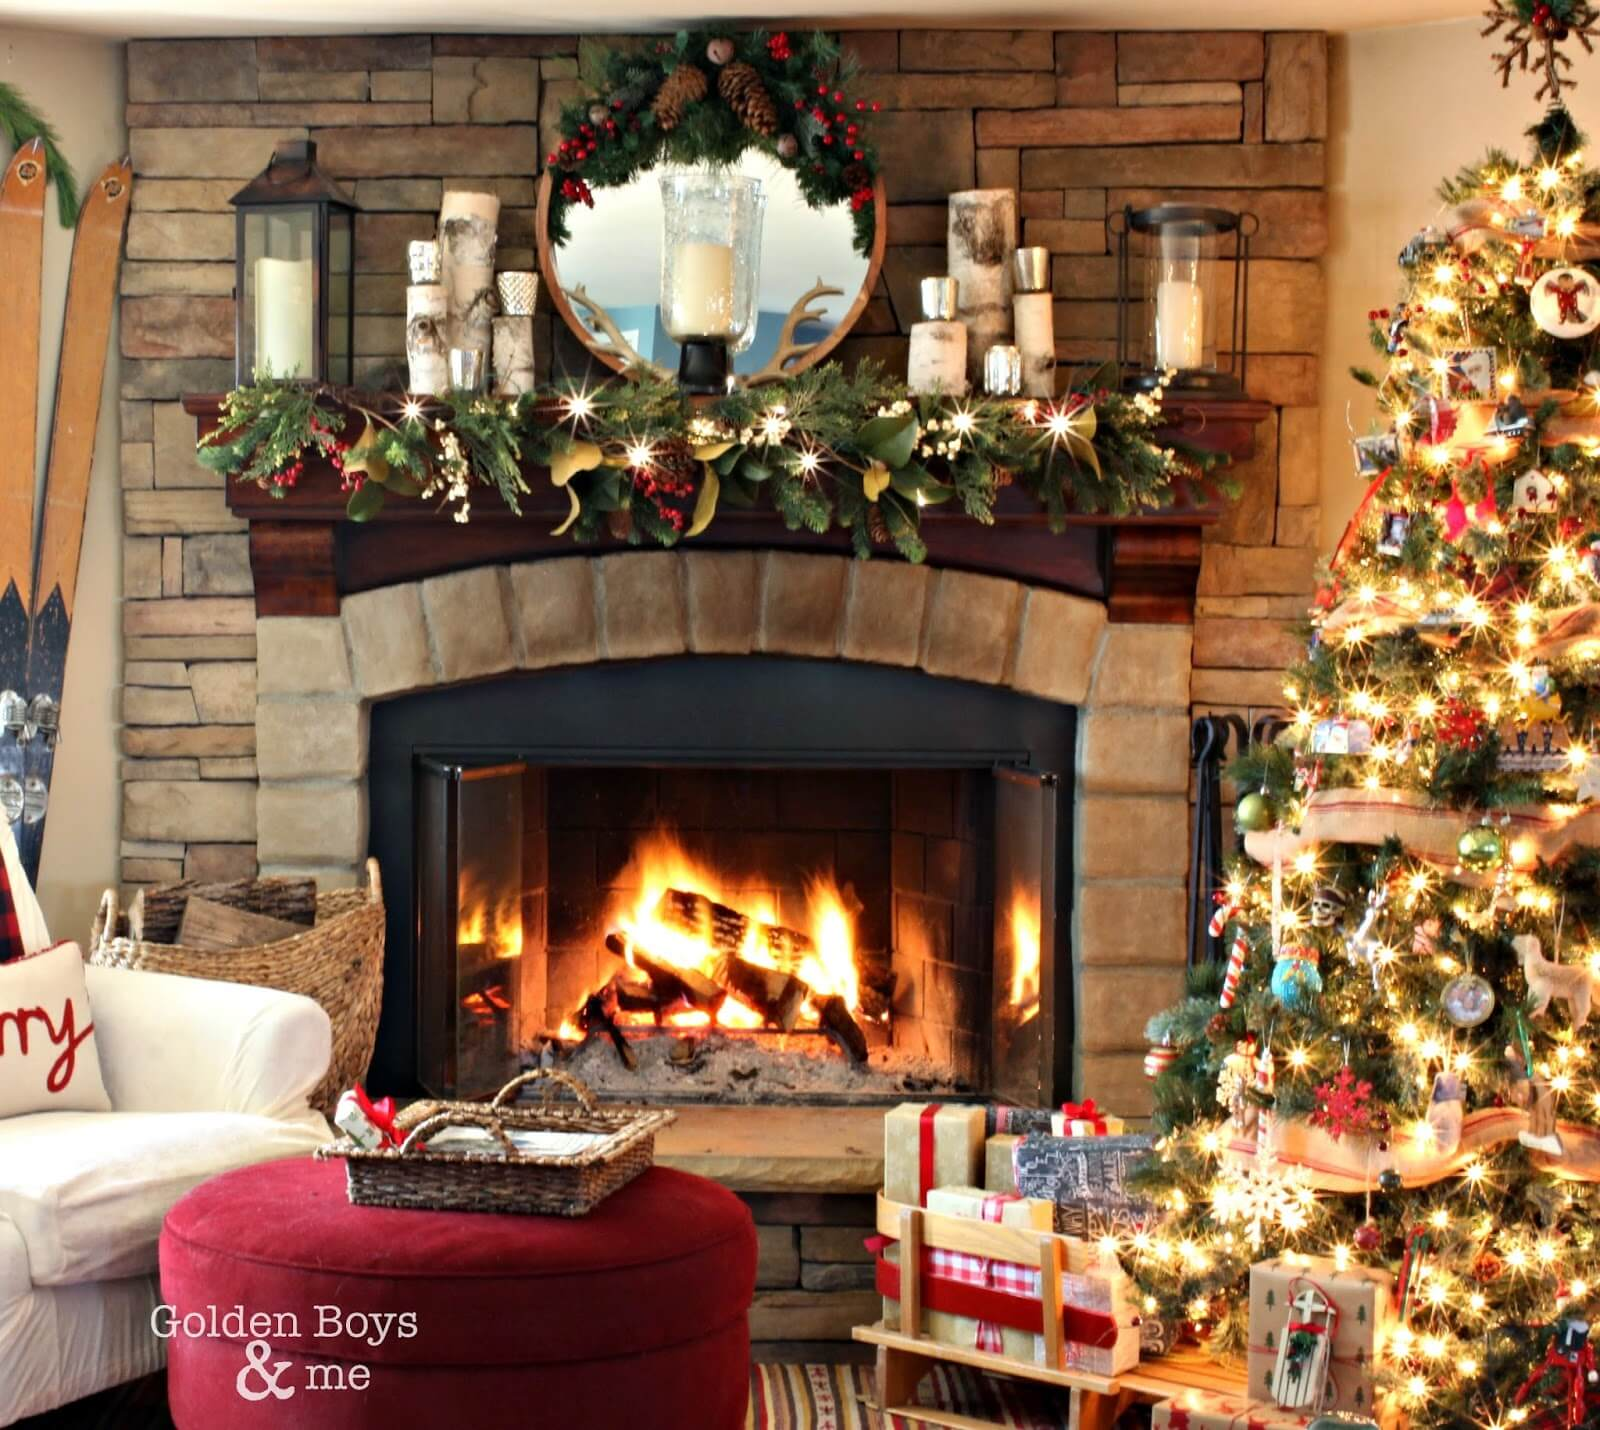 Home Design Ideas For Christmas: 32 Best Christmas Mantel Decoration Ideas And Designs For 2019